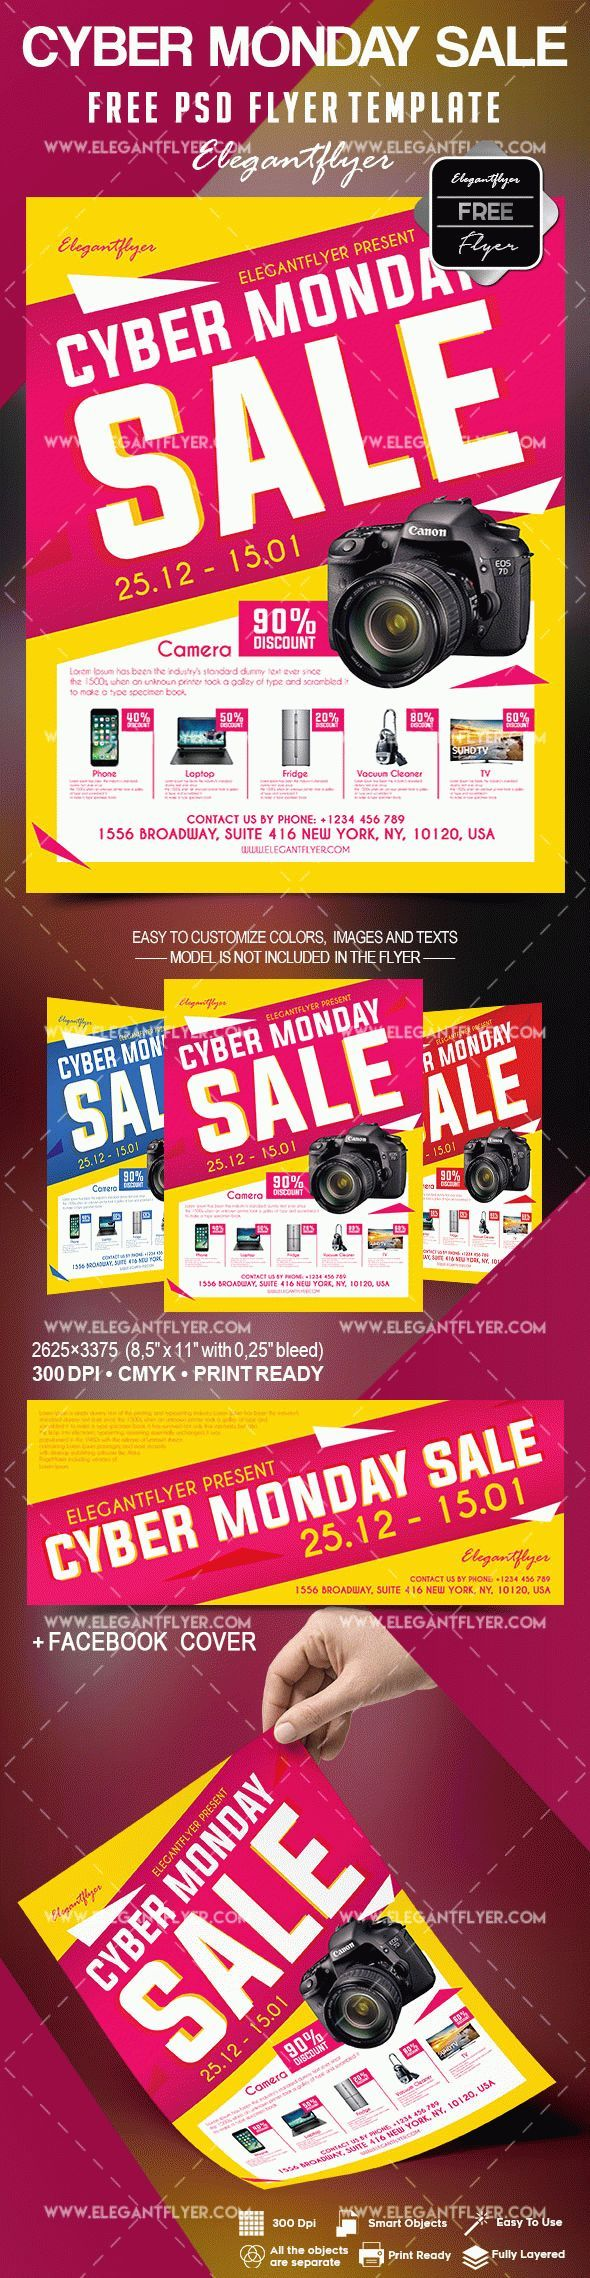 Free Cyber Monday Sale Flyer Template Sale flyer, Flyer